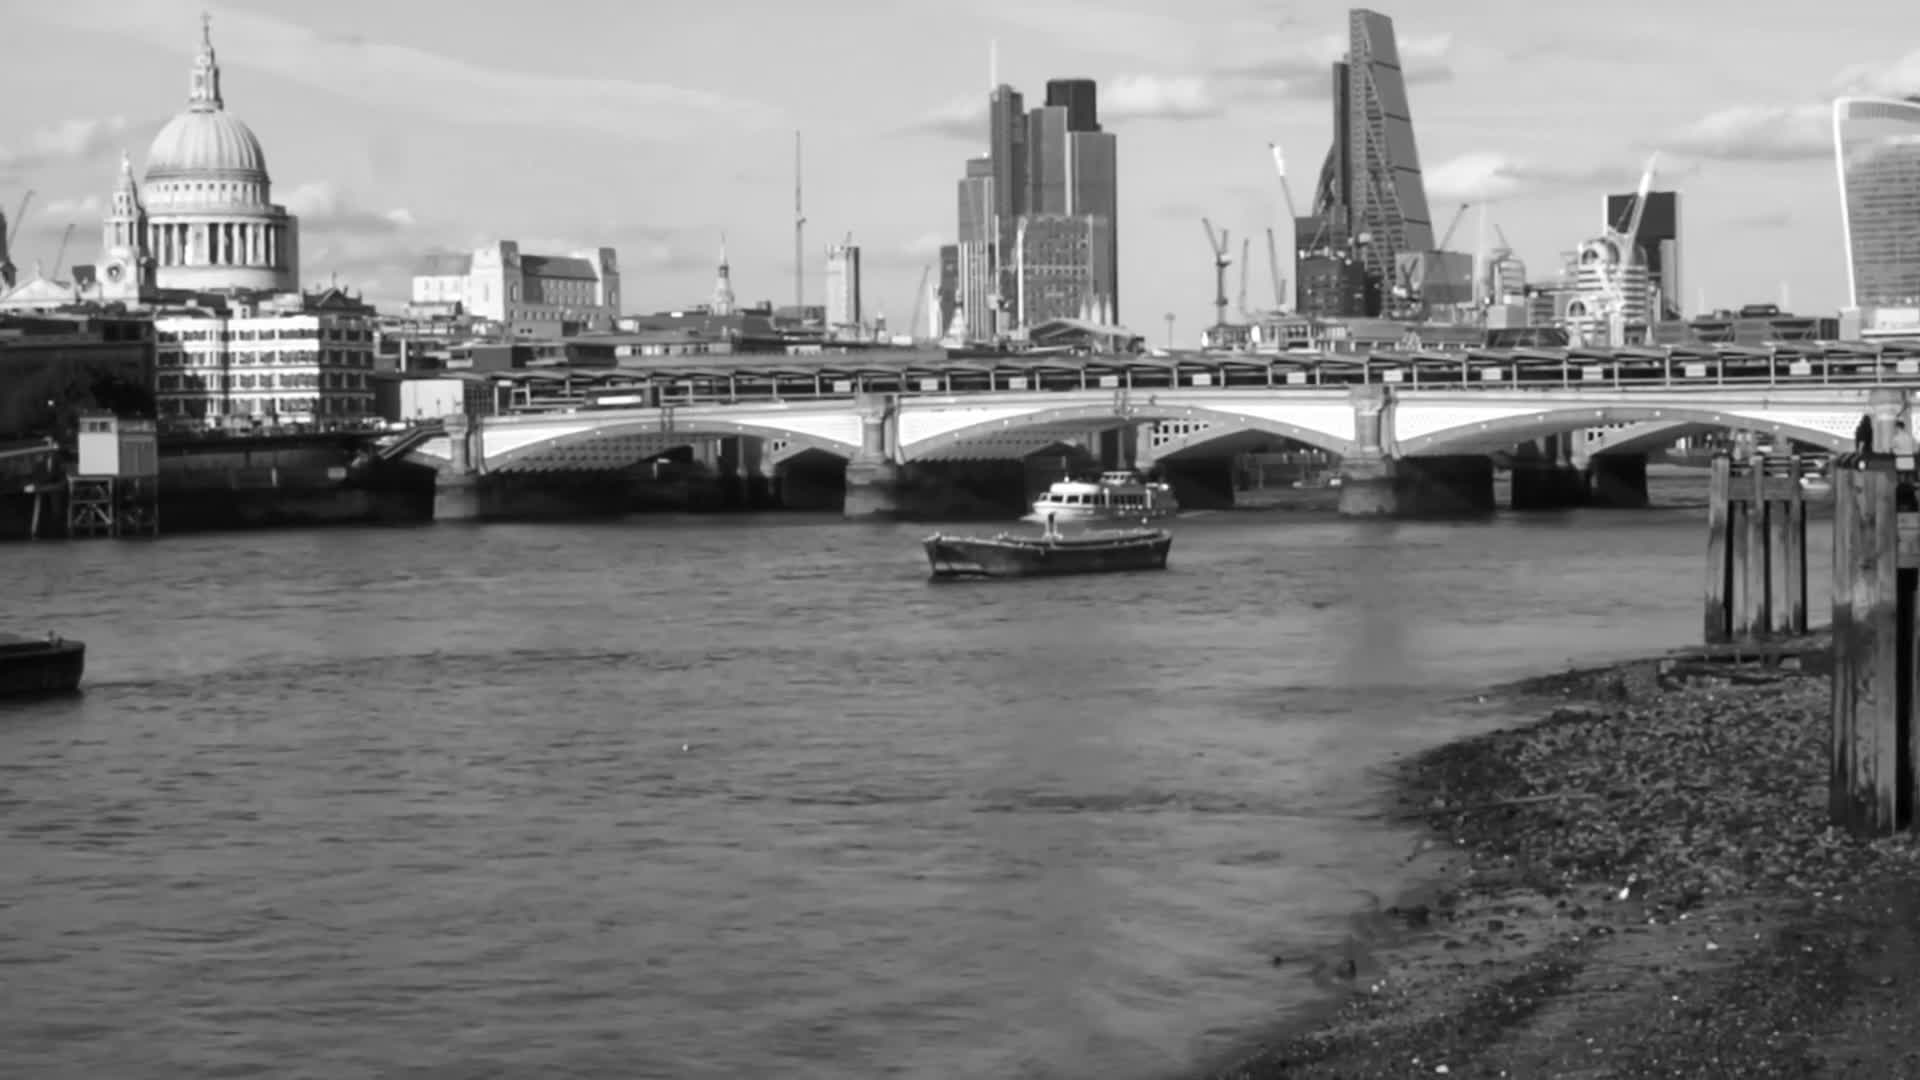 Black and white footage of boat in a river